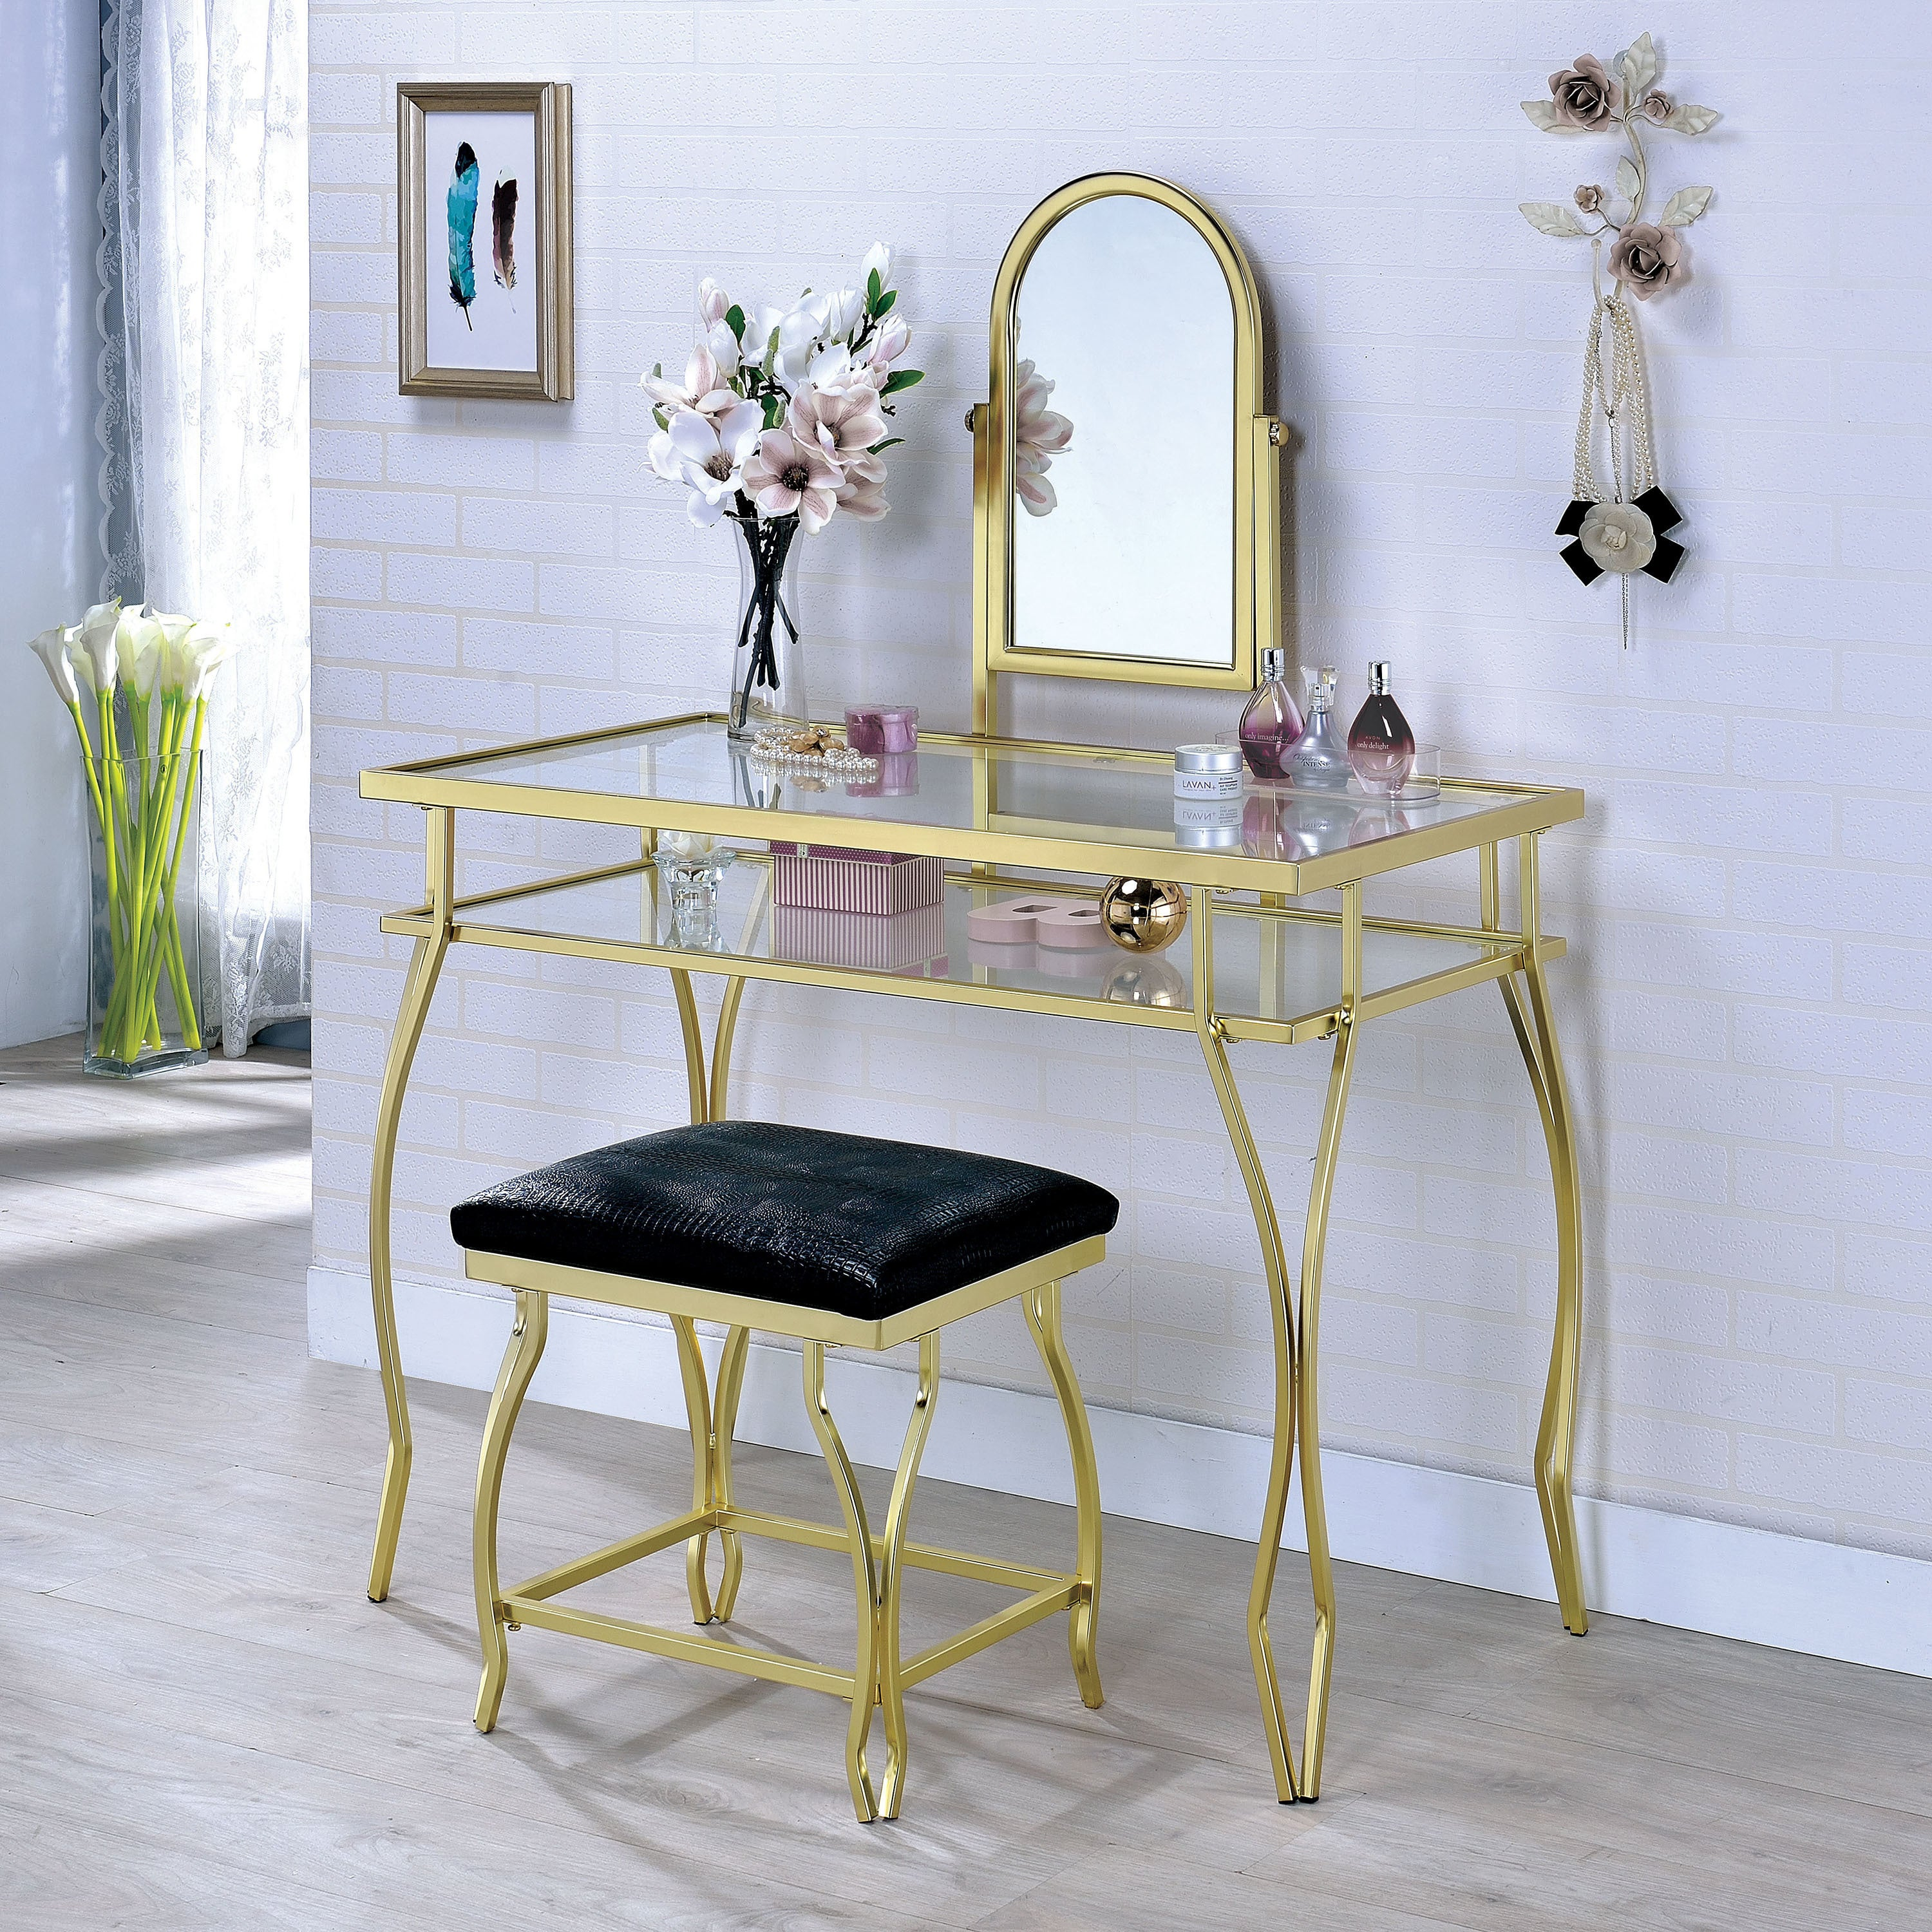 3 Piece Vanity Set.Chappelle Glam 3 Piece Vanity Set By Foa